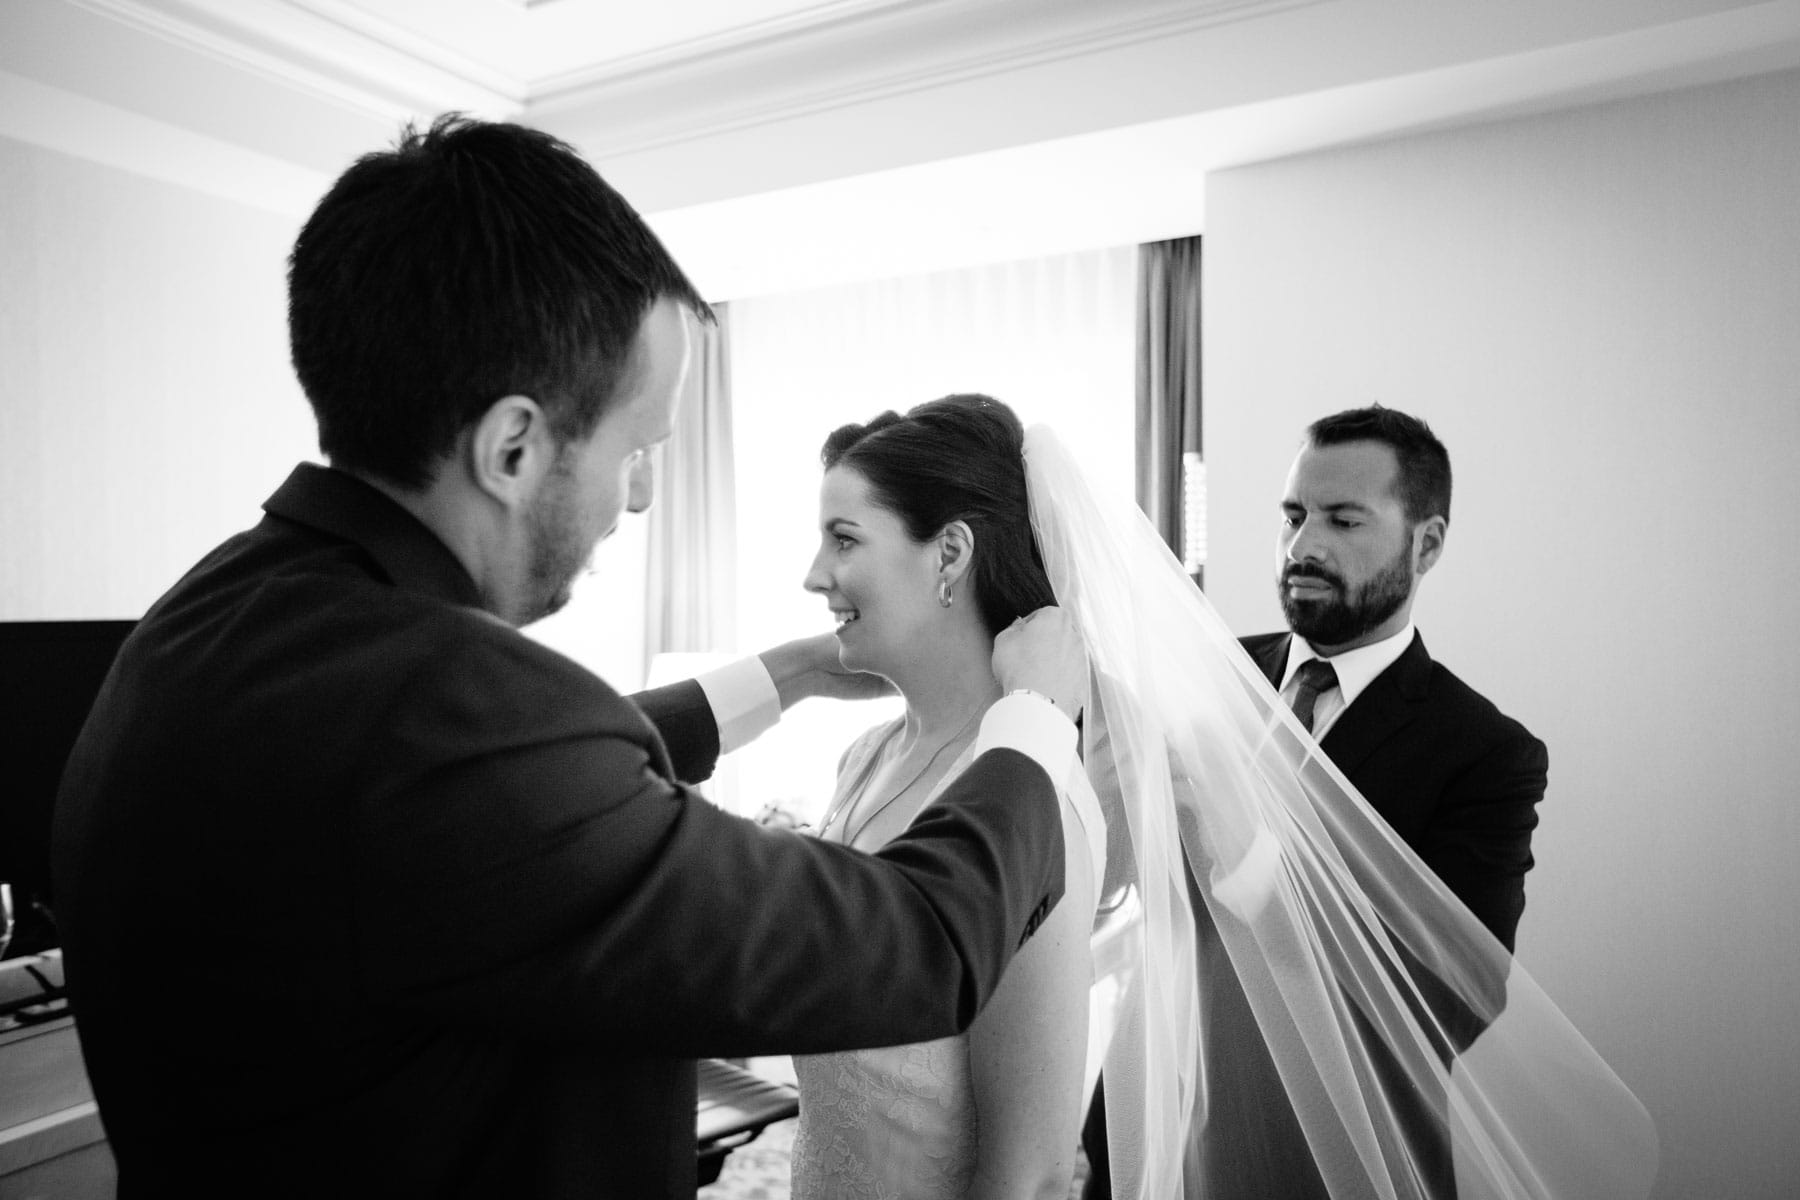 The bride is assisted with putting on her necklace before the marriage ceremony at this Trump Hotel in Toronto